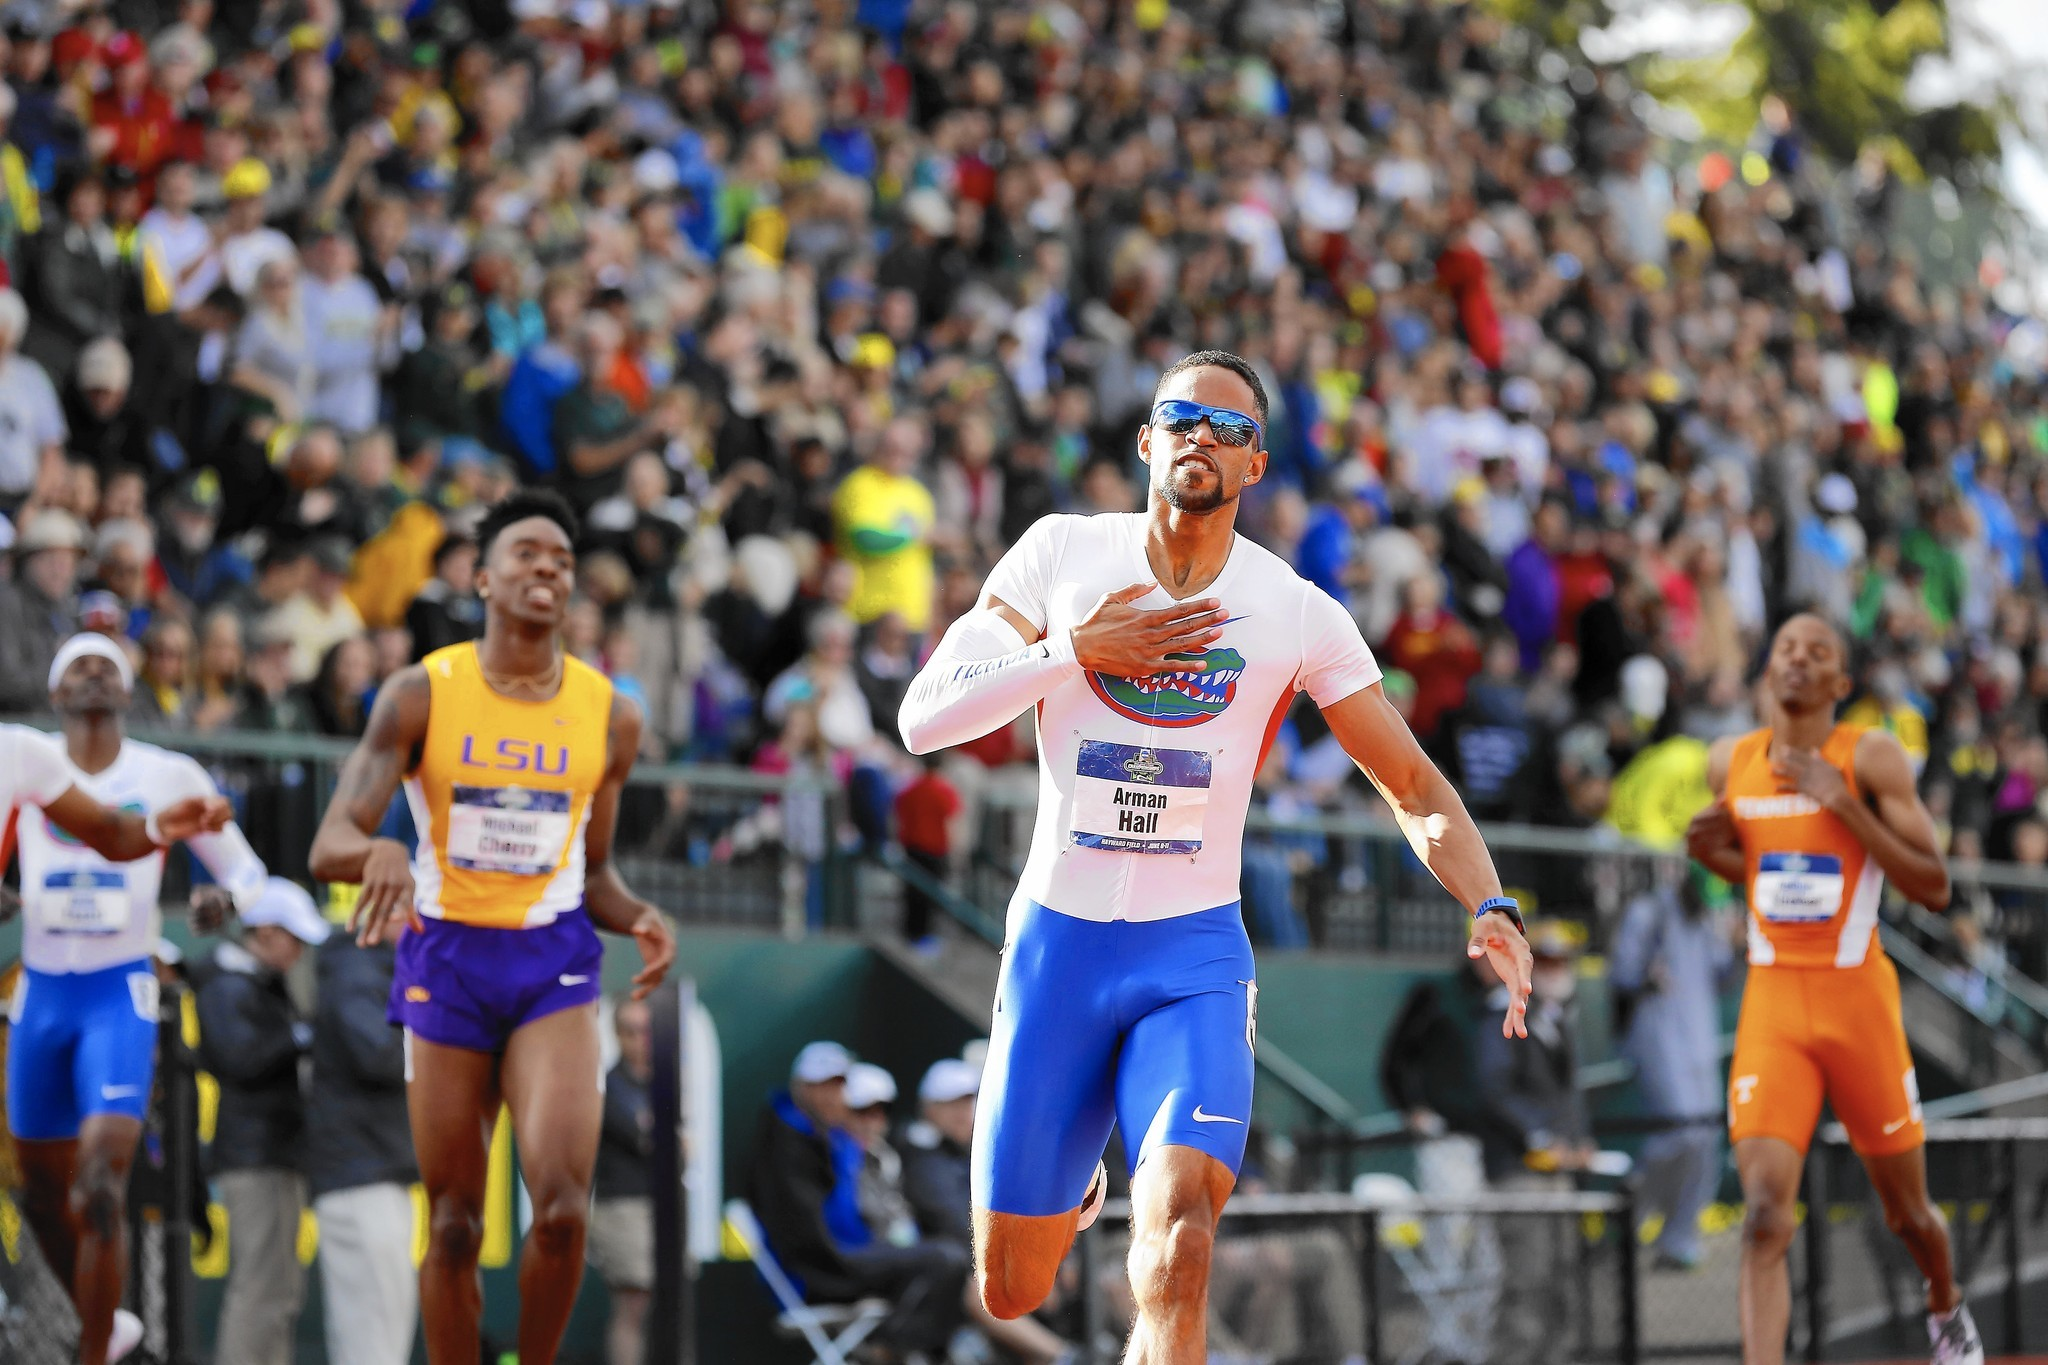 Os-gators-track-and-field-0701-20160630